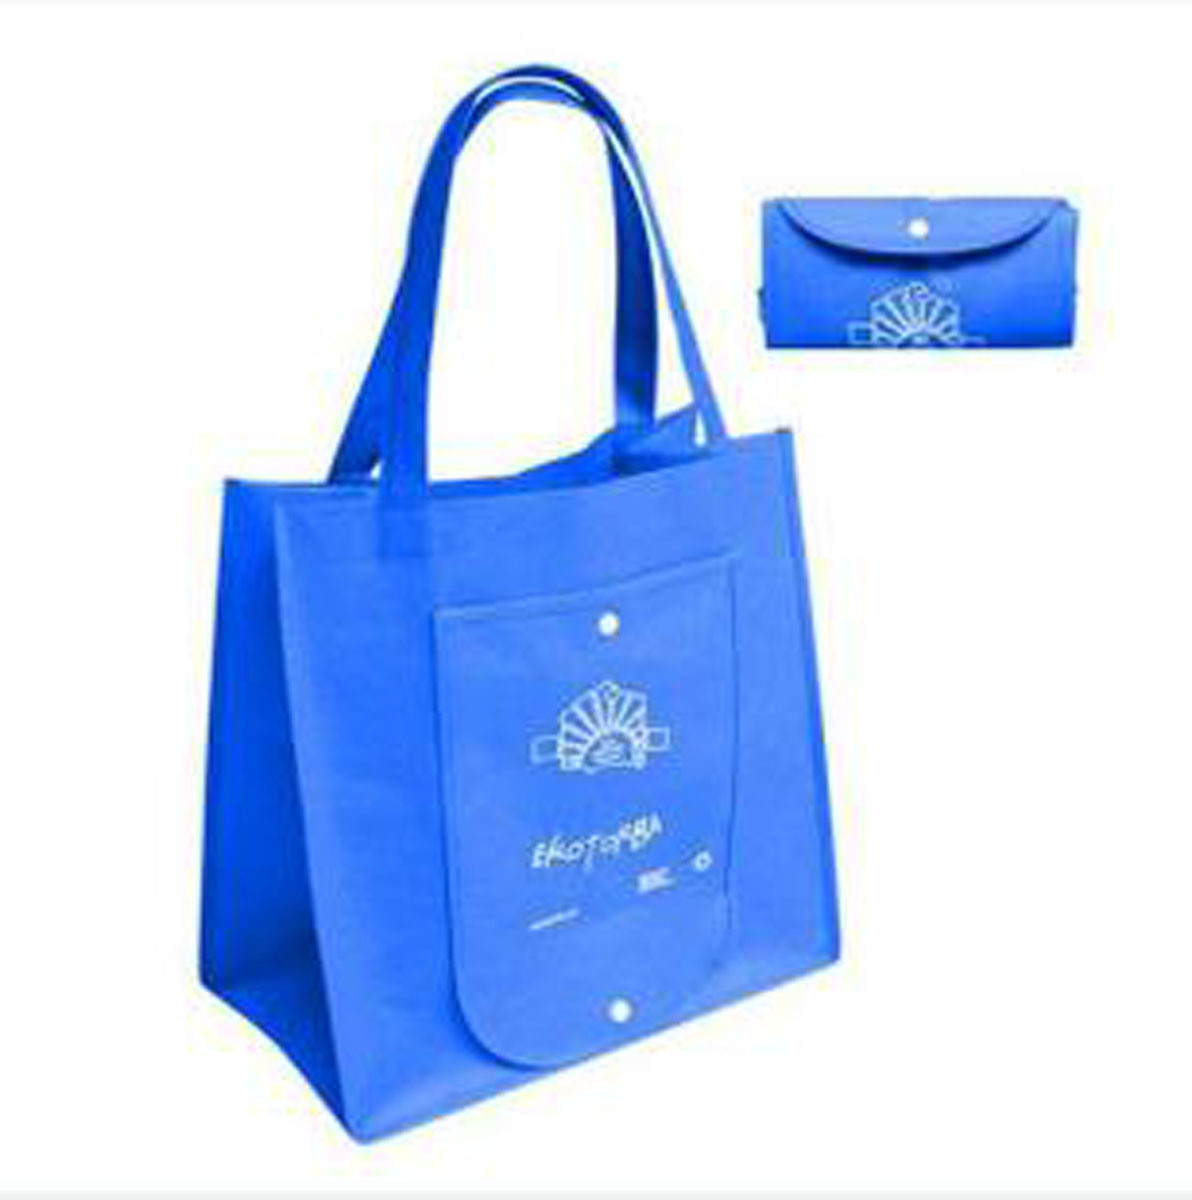 china foldable shopping bag blue bag china foldable shopping bag foldable shopping bags. Black Bedroom Furniture Sets. Home Design Ideas